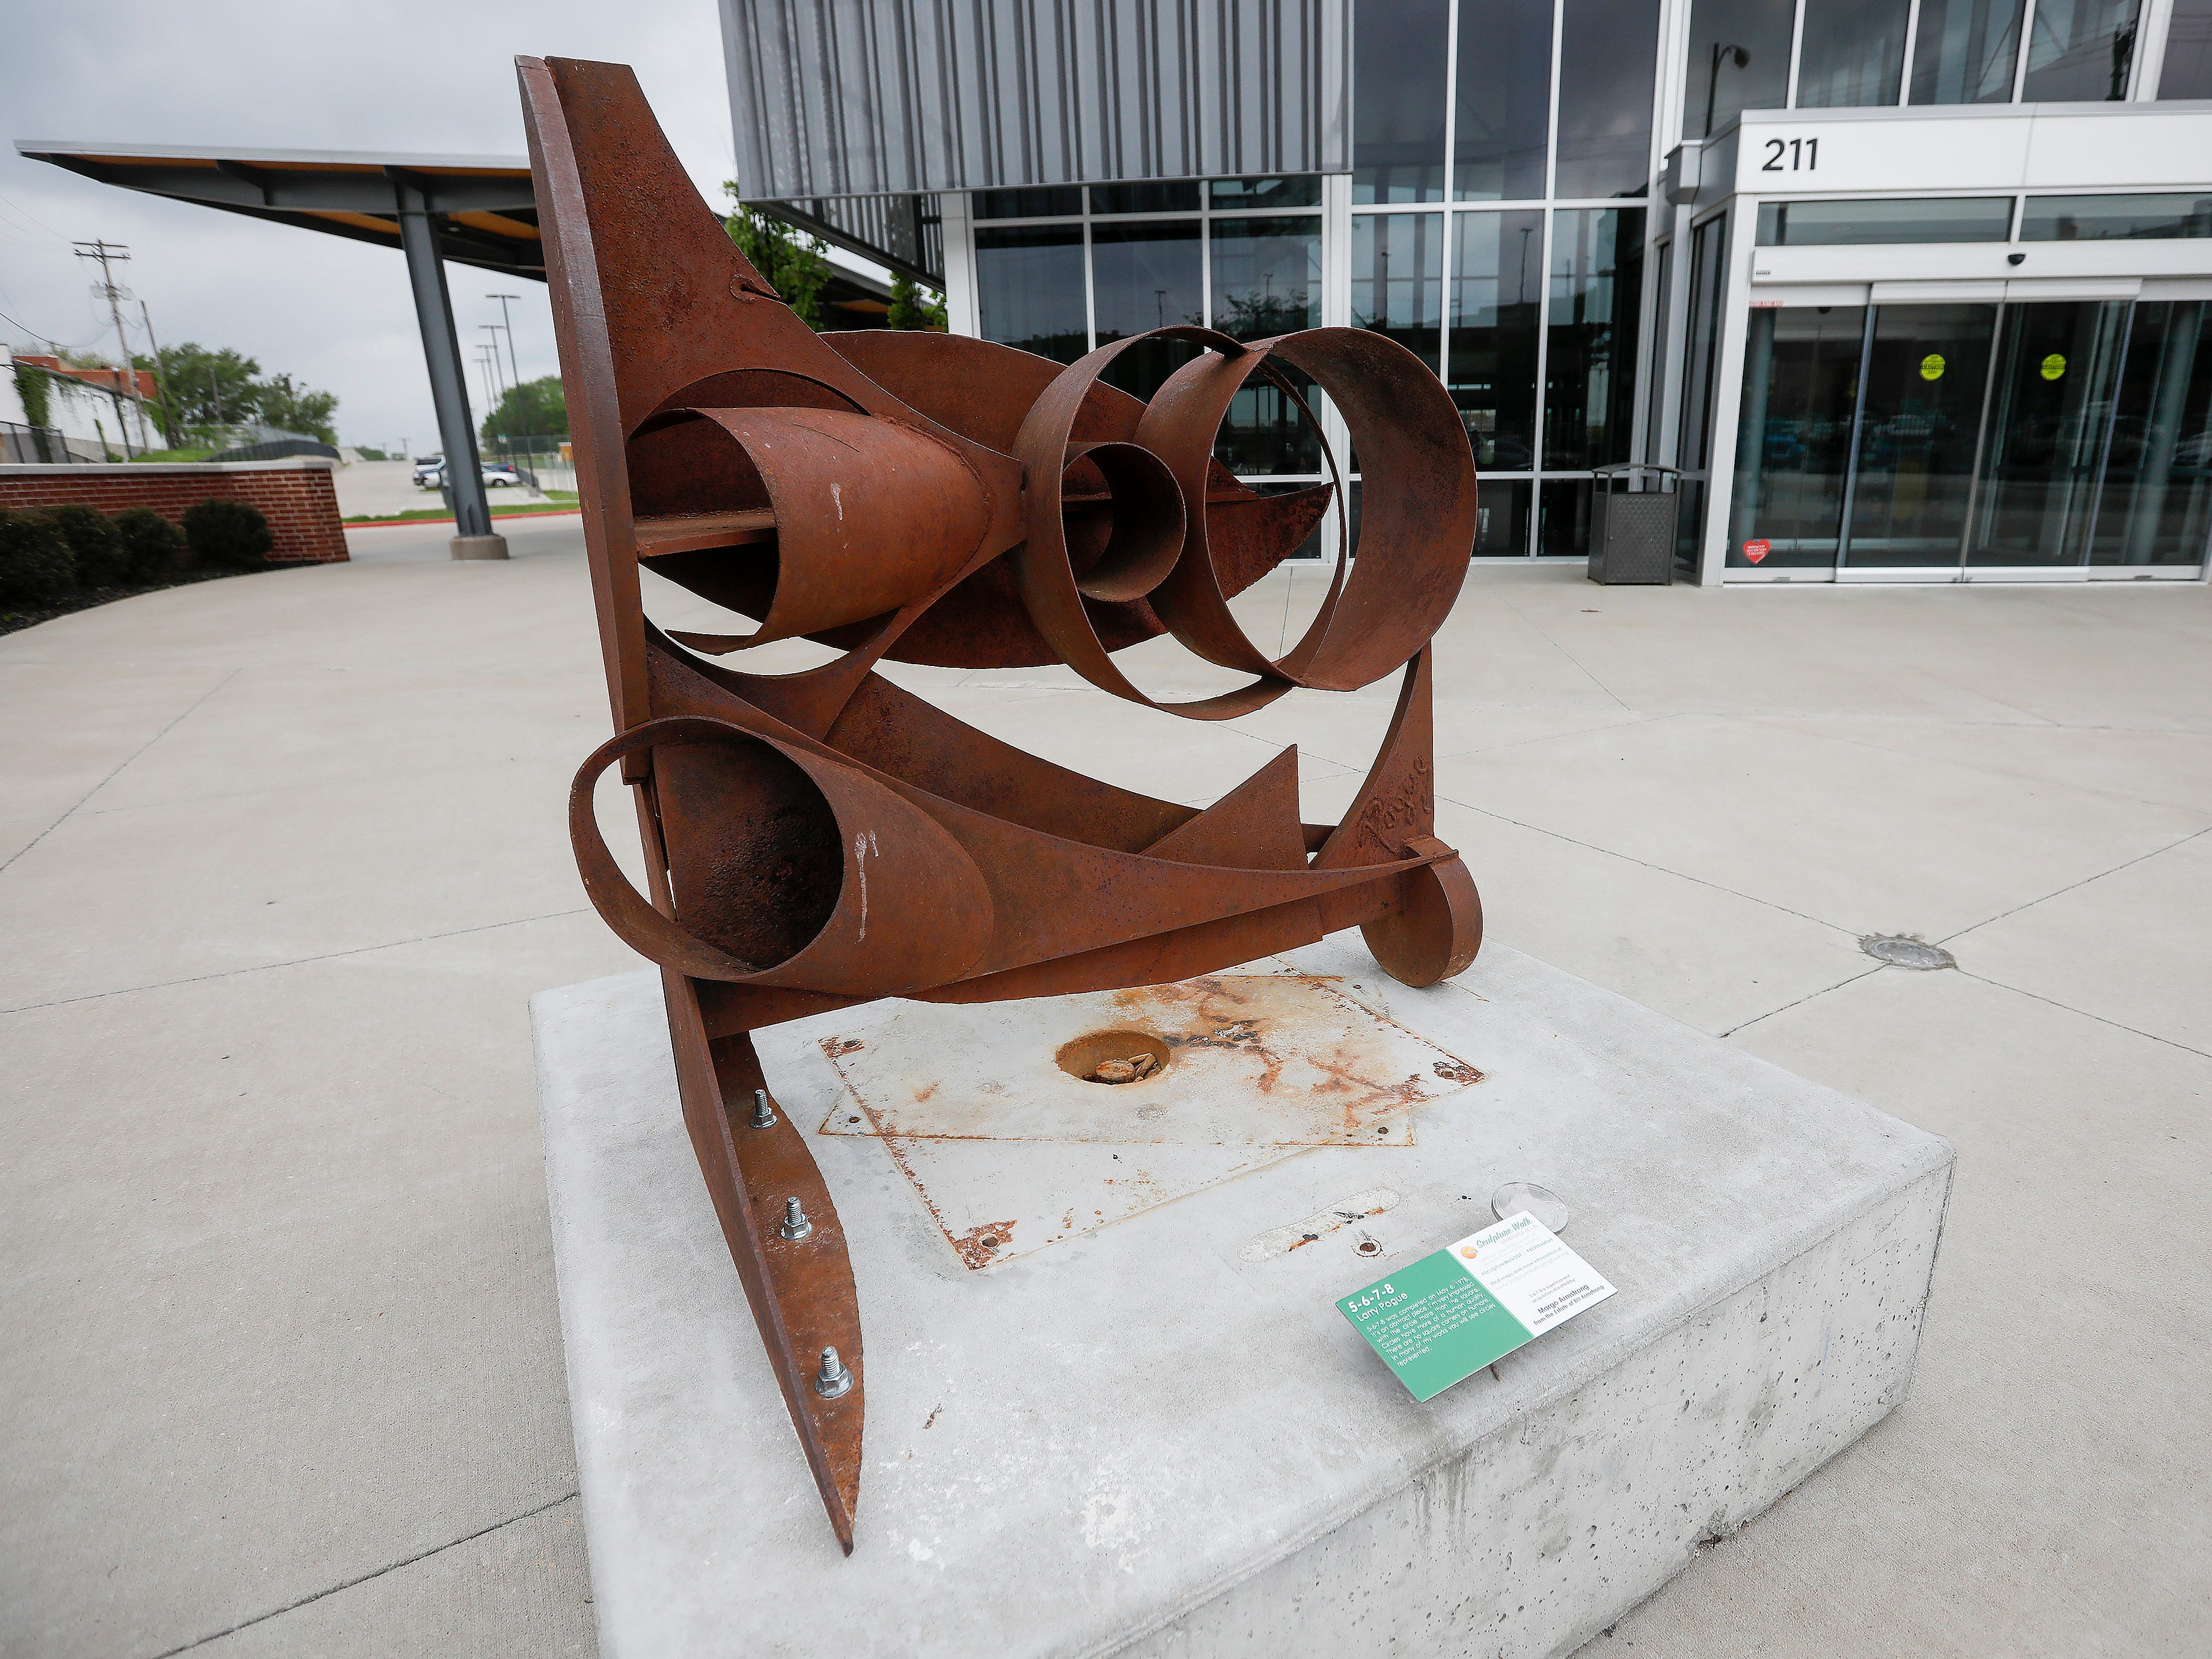 """5-6-7-8"" by Larry Pogue is located on Main Avenue in front of the CU Bus Transfer Station."